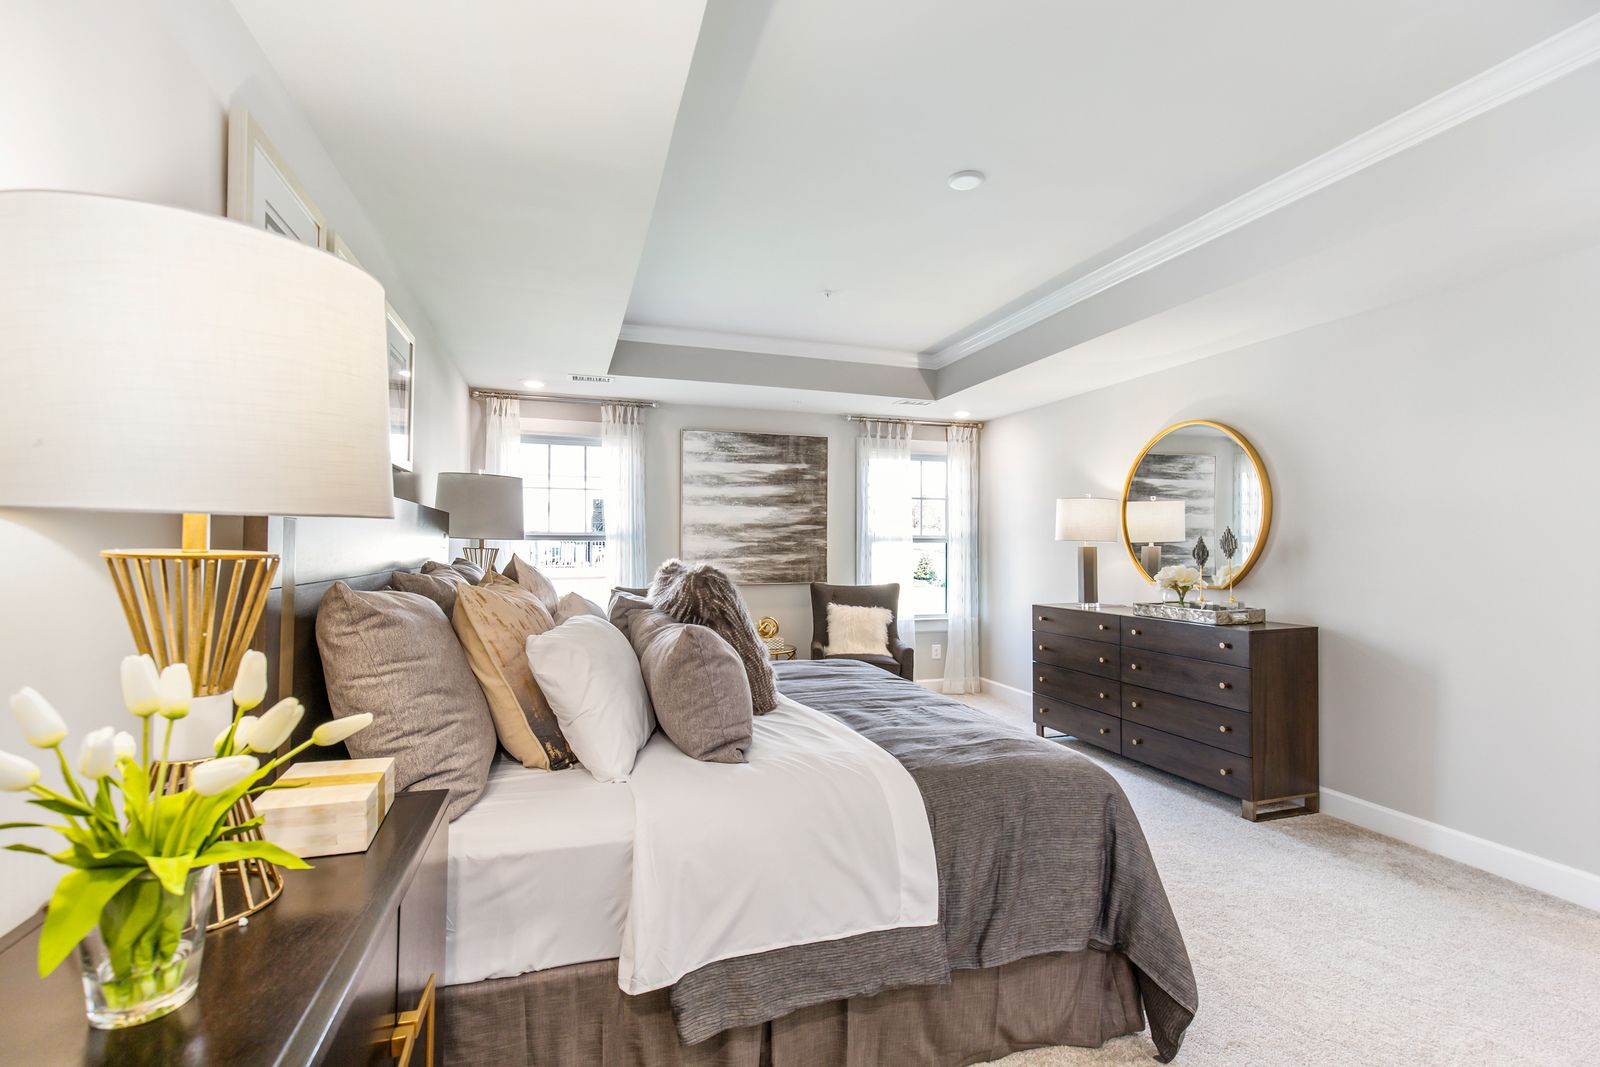 Bedroom featured in the Merion By NVHomes in Philadelphia, PA